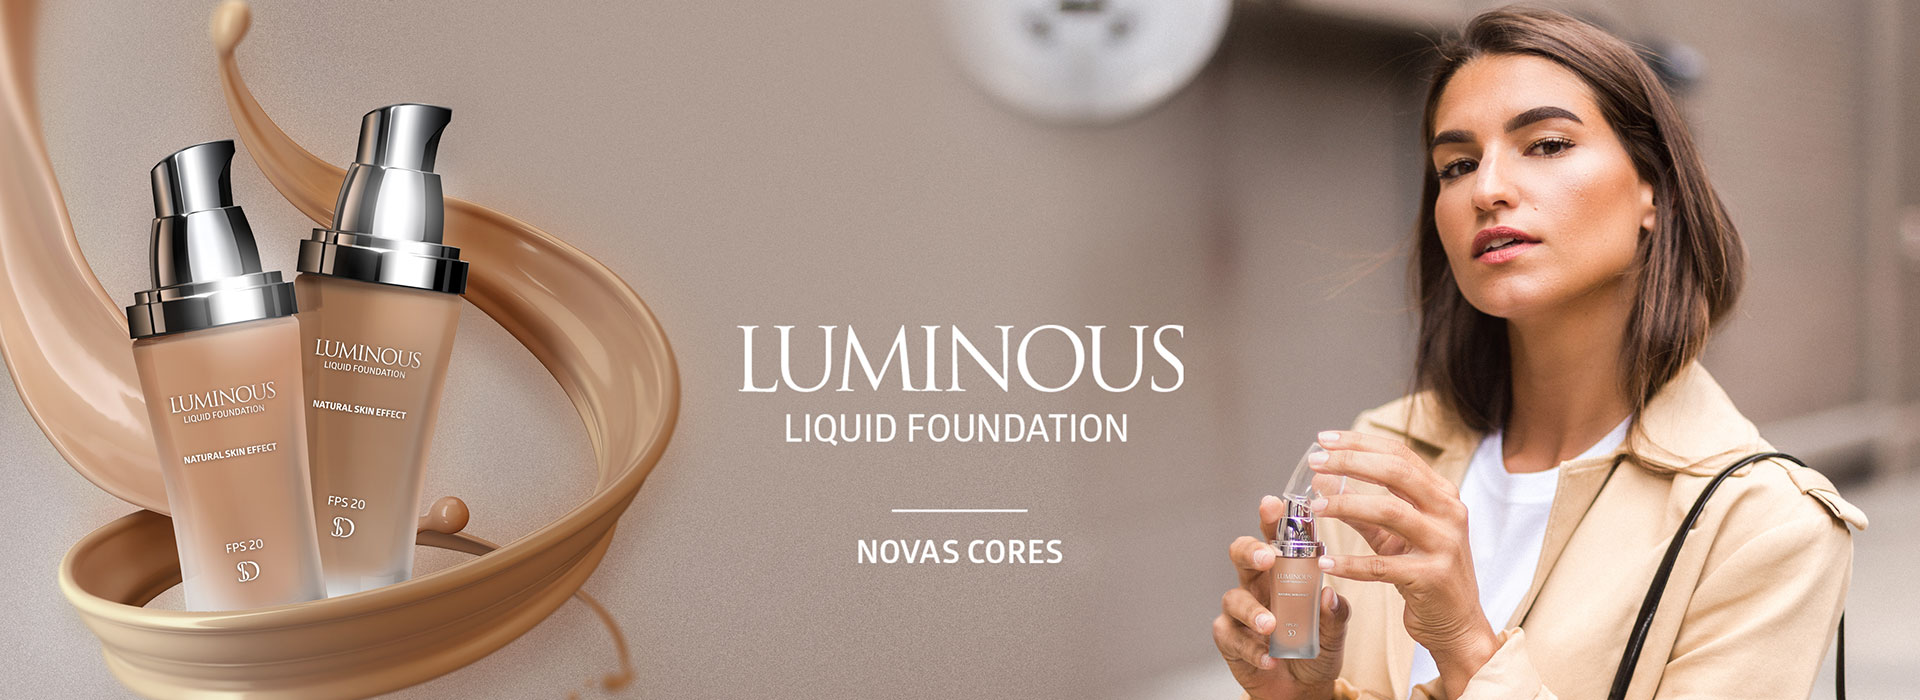 Novas Cores - Luminous